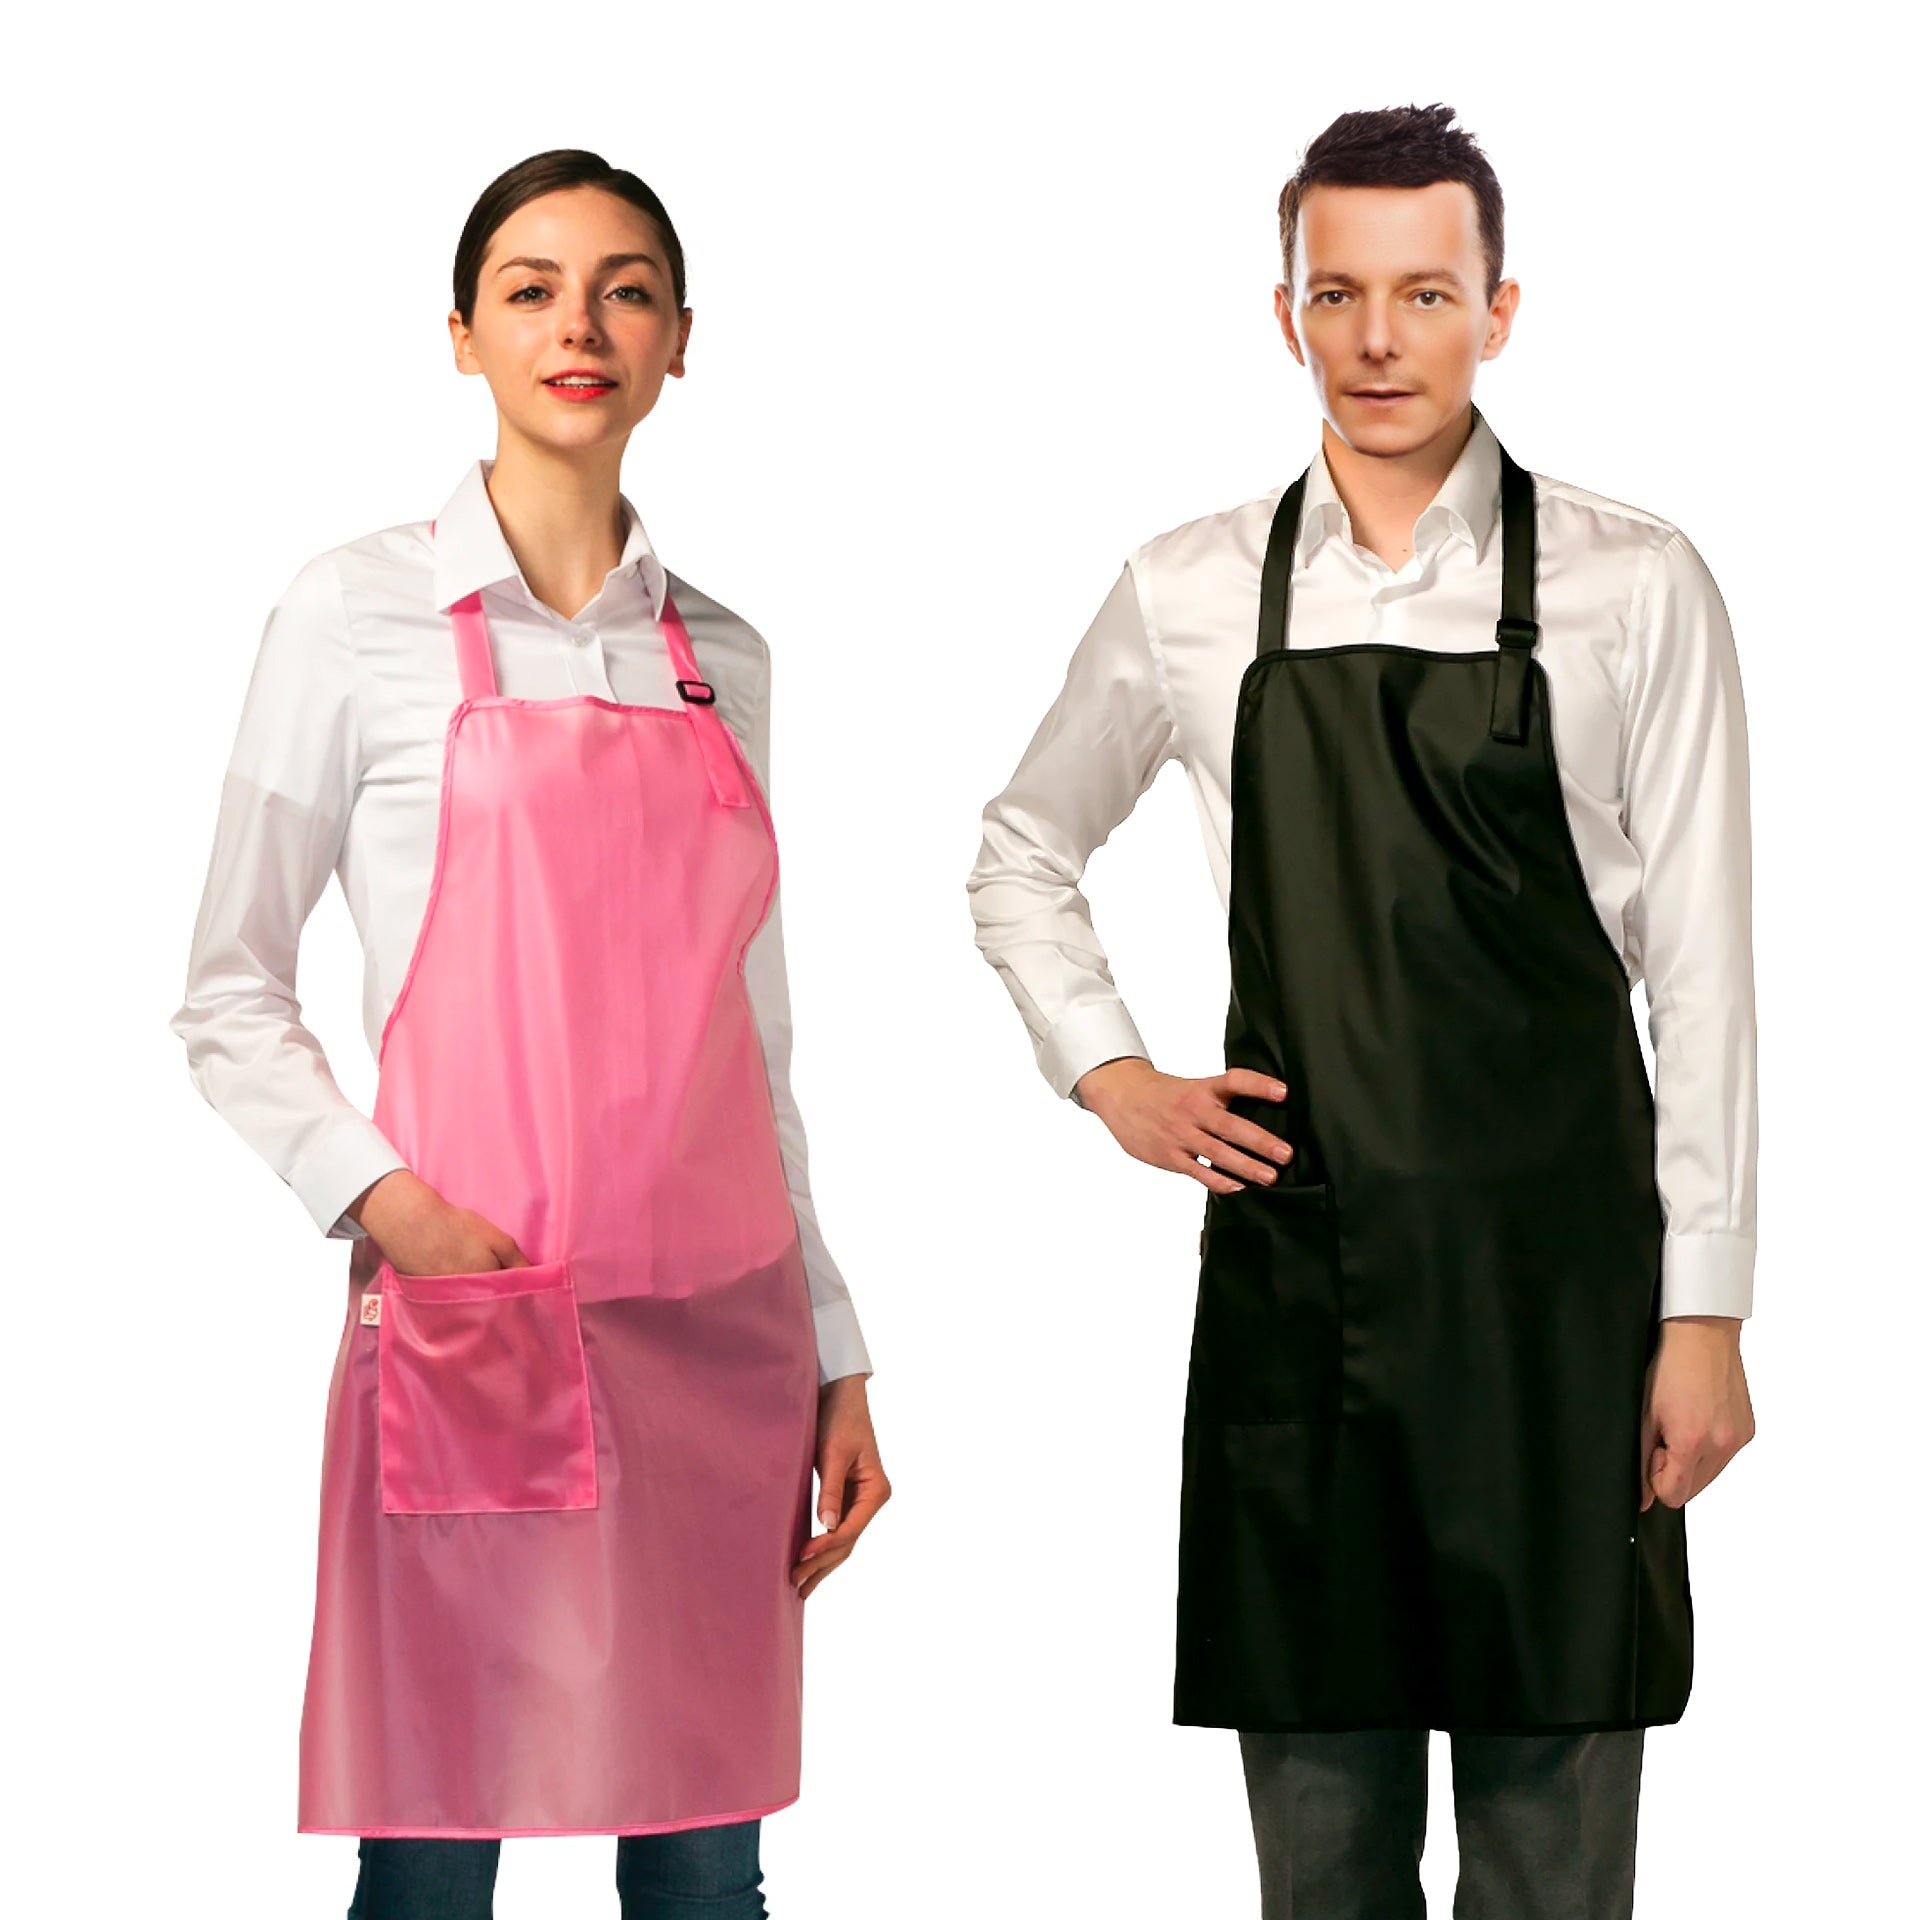 Waterproof Apron | One Pocket Bib Apron